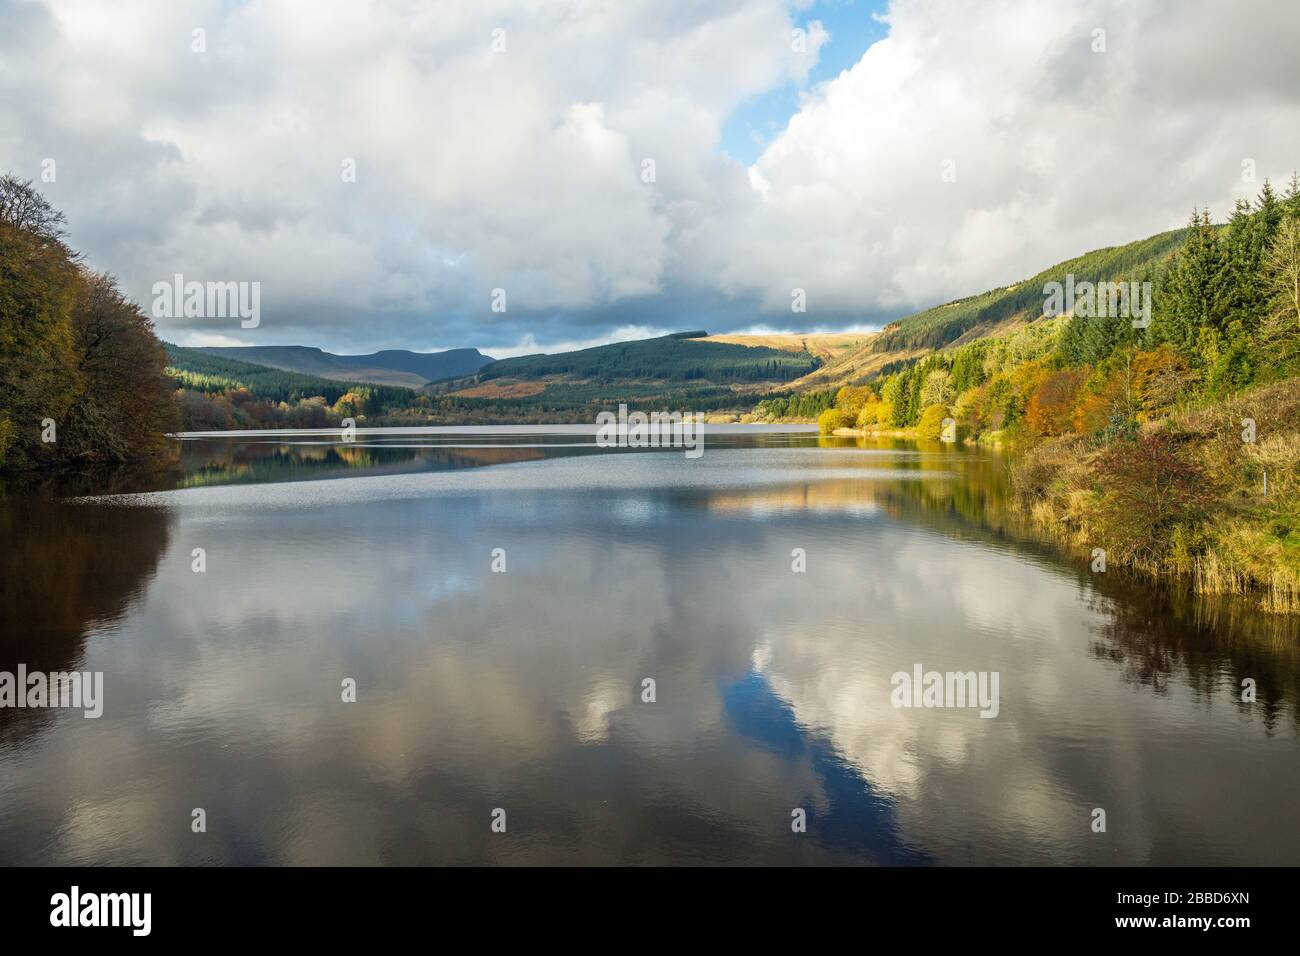 Dolygaer Reservoir in the Central Brecon Beacons South Wales in autumn showing beautiful cloud reflections in the reservoir. Stock Photo